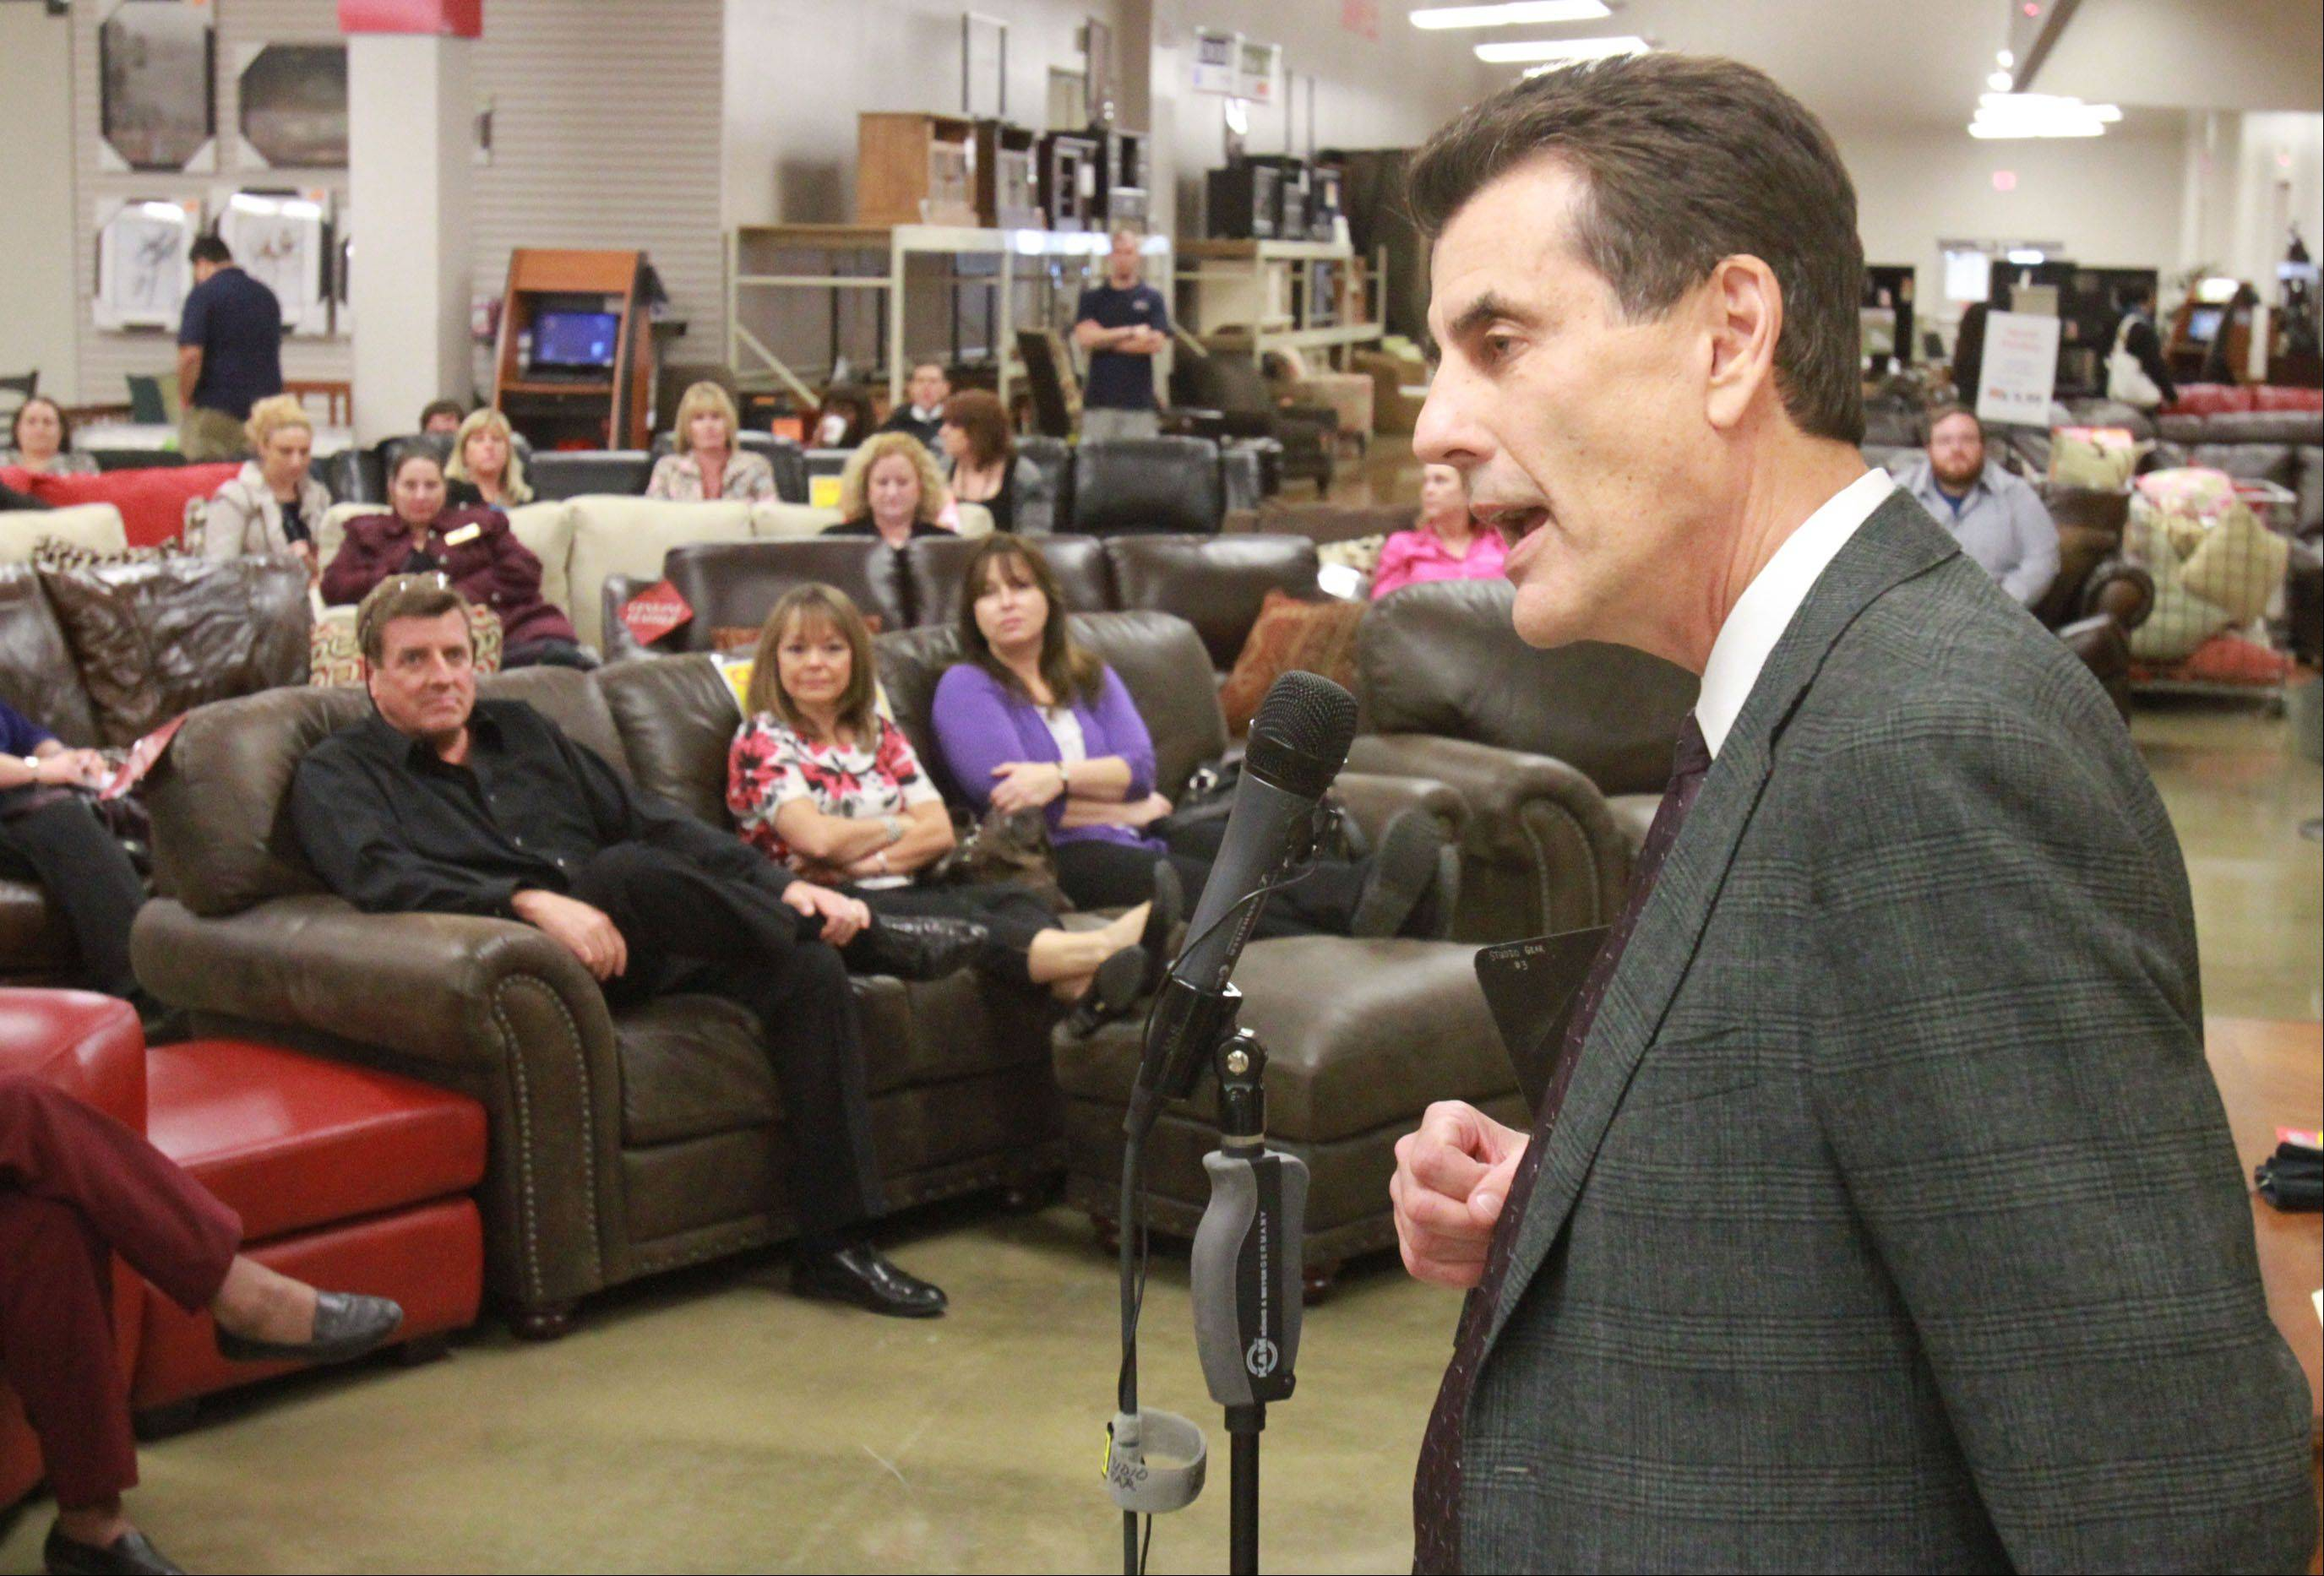 Gary Steinhafel, CEO of Steinhafels Furniture, shared stories about running a growing family-owned business at the recent Fall Business Stampede expo in Vernon Hills.